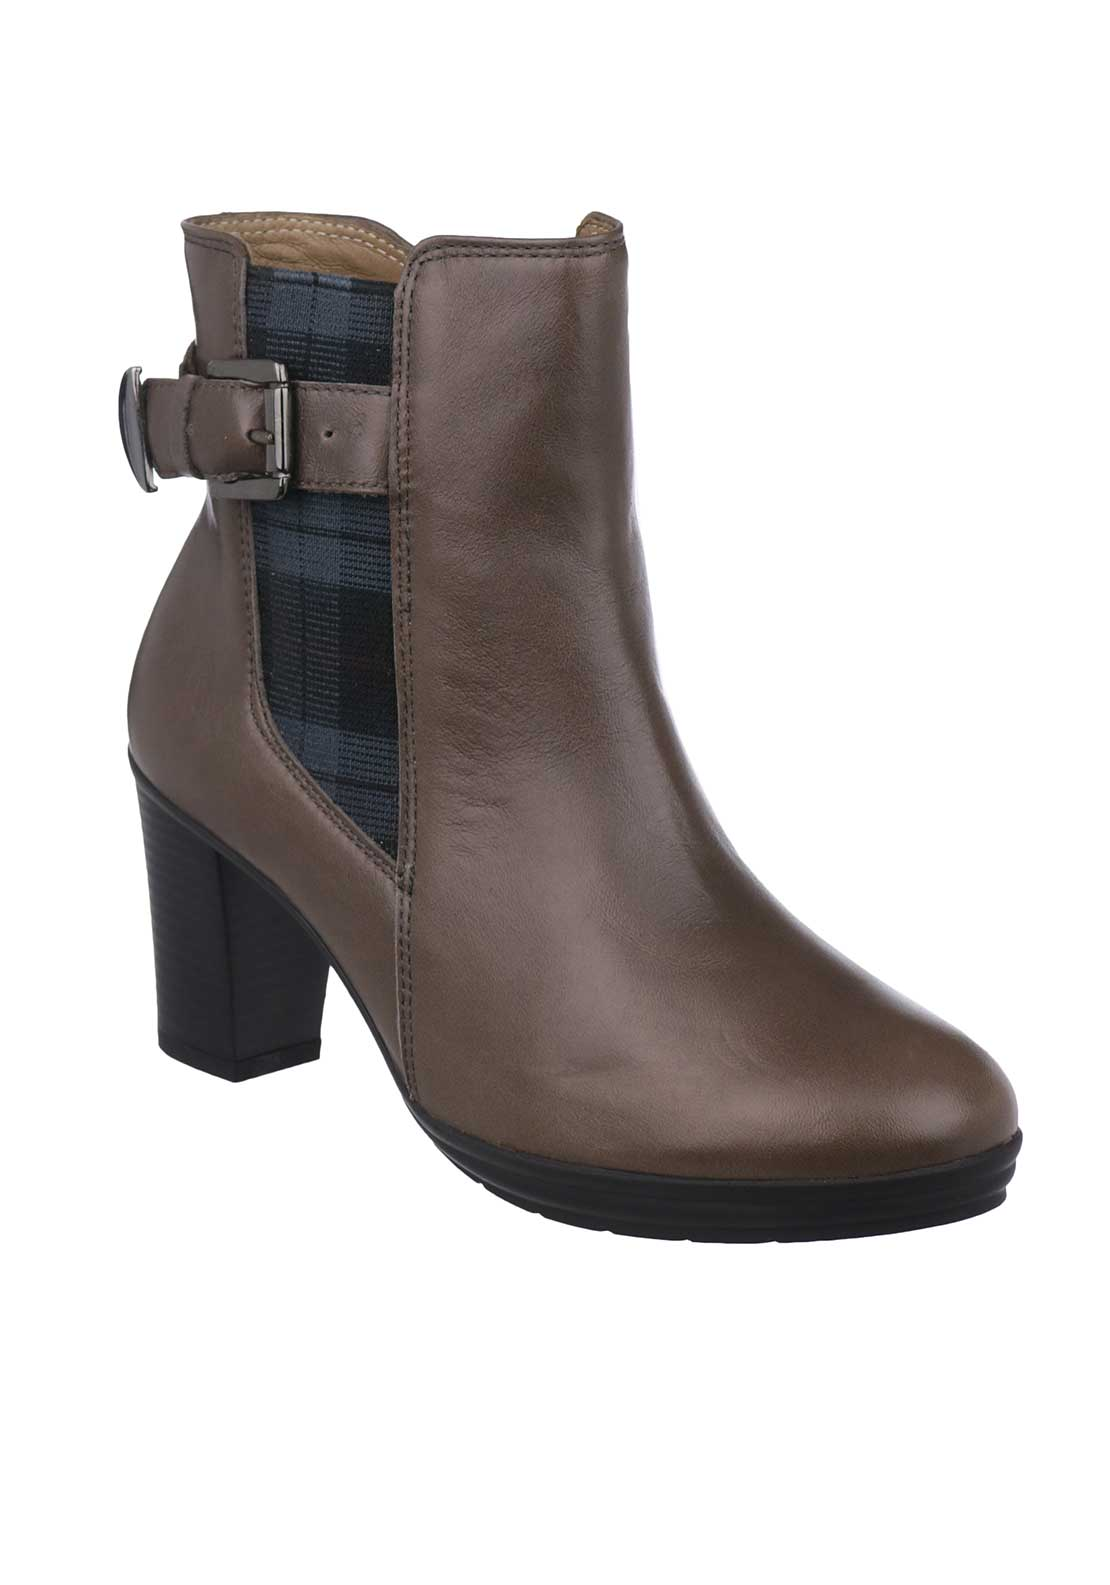 Flex & Go Berenice Leather Heeled Ankle Boots, Grey